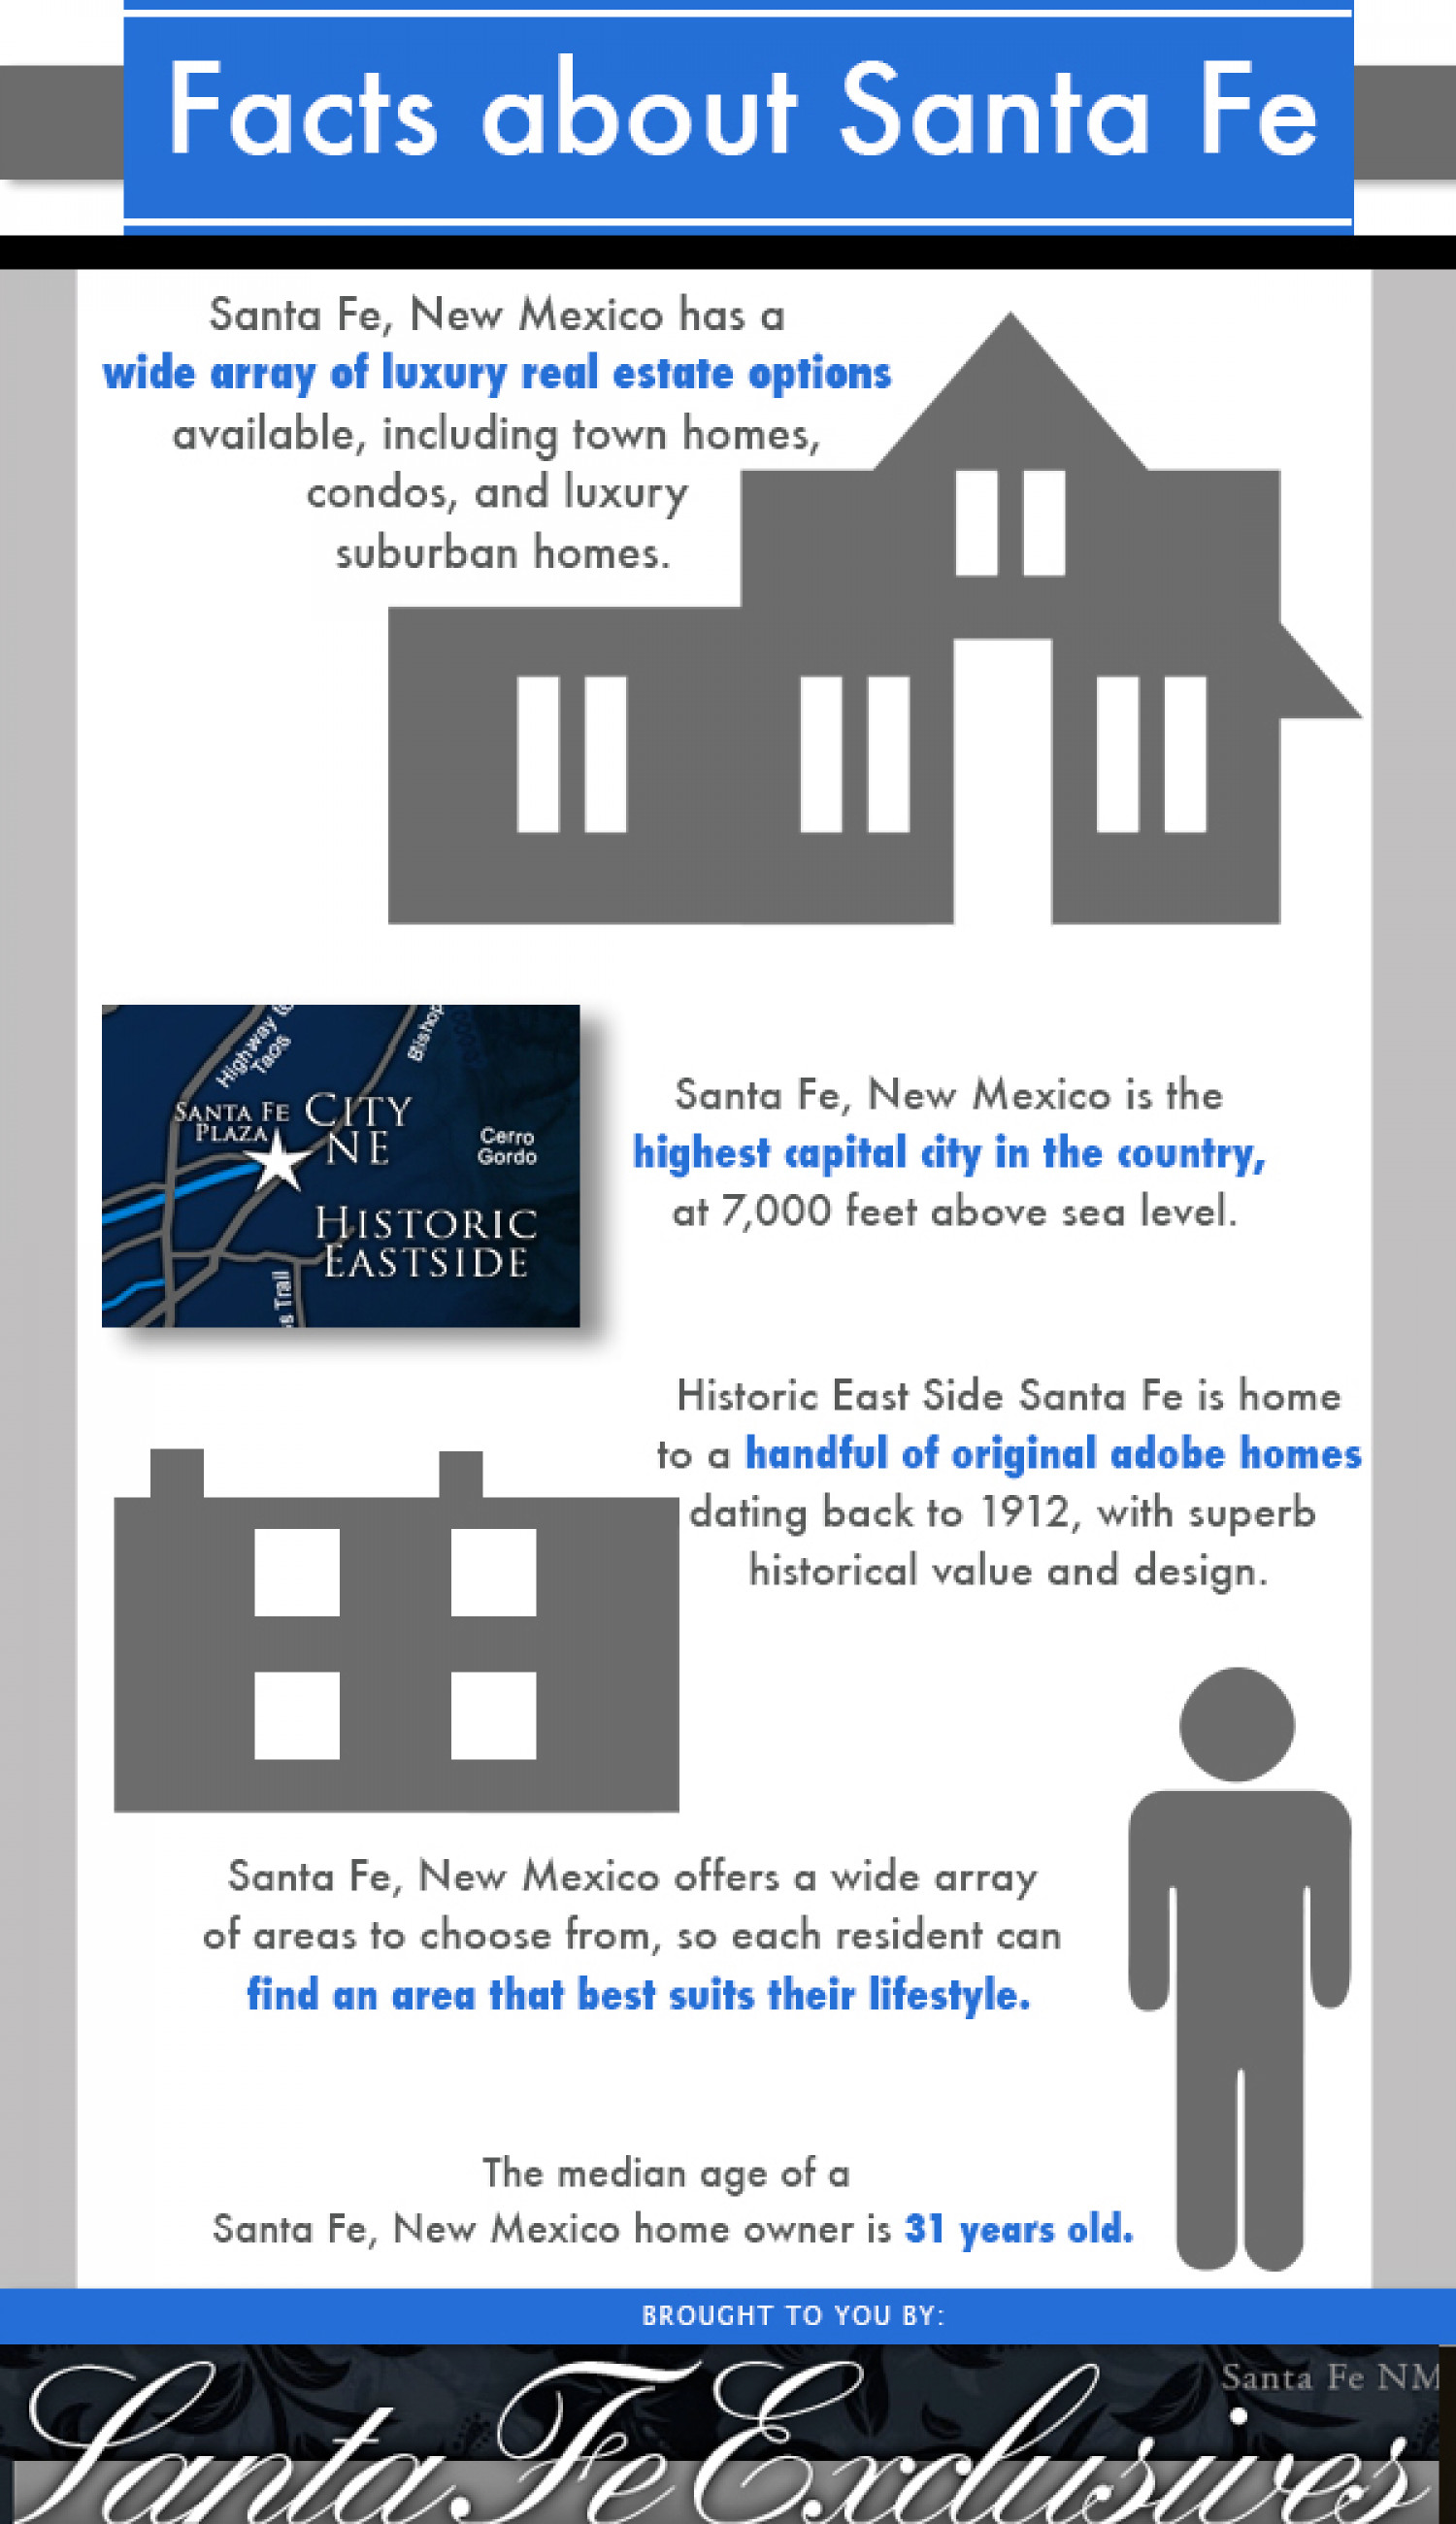 Facts About Santa Fe Infographic